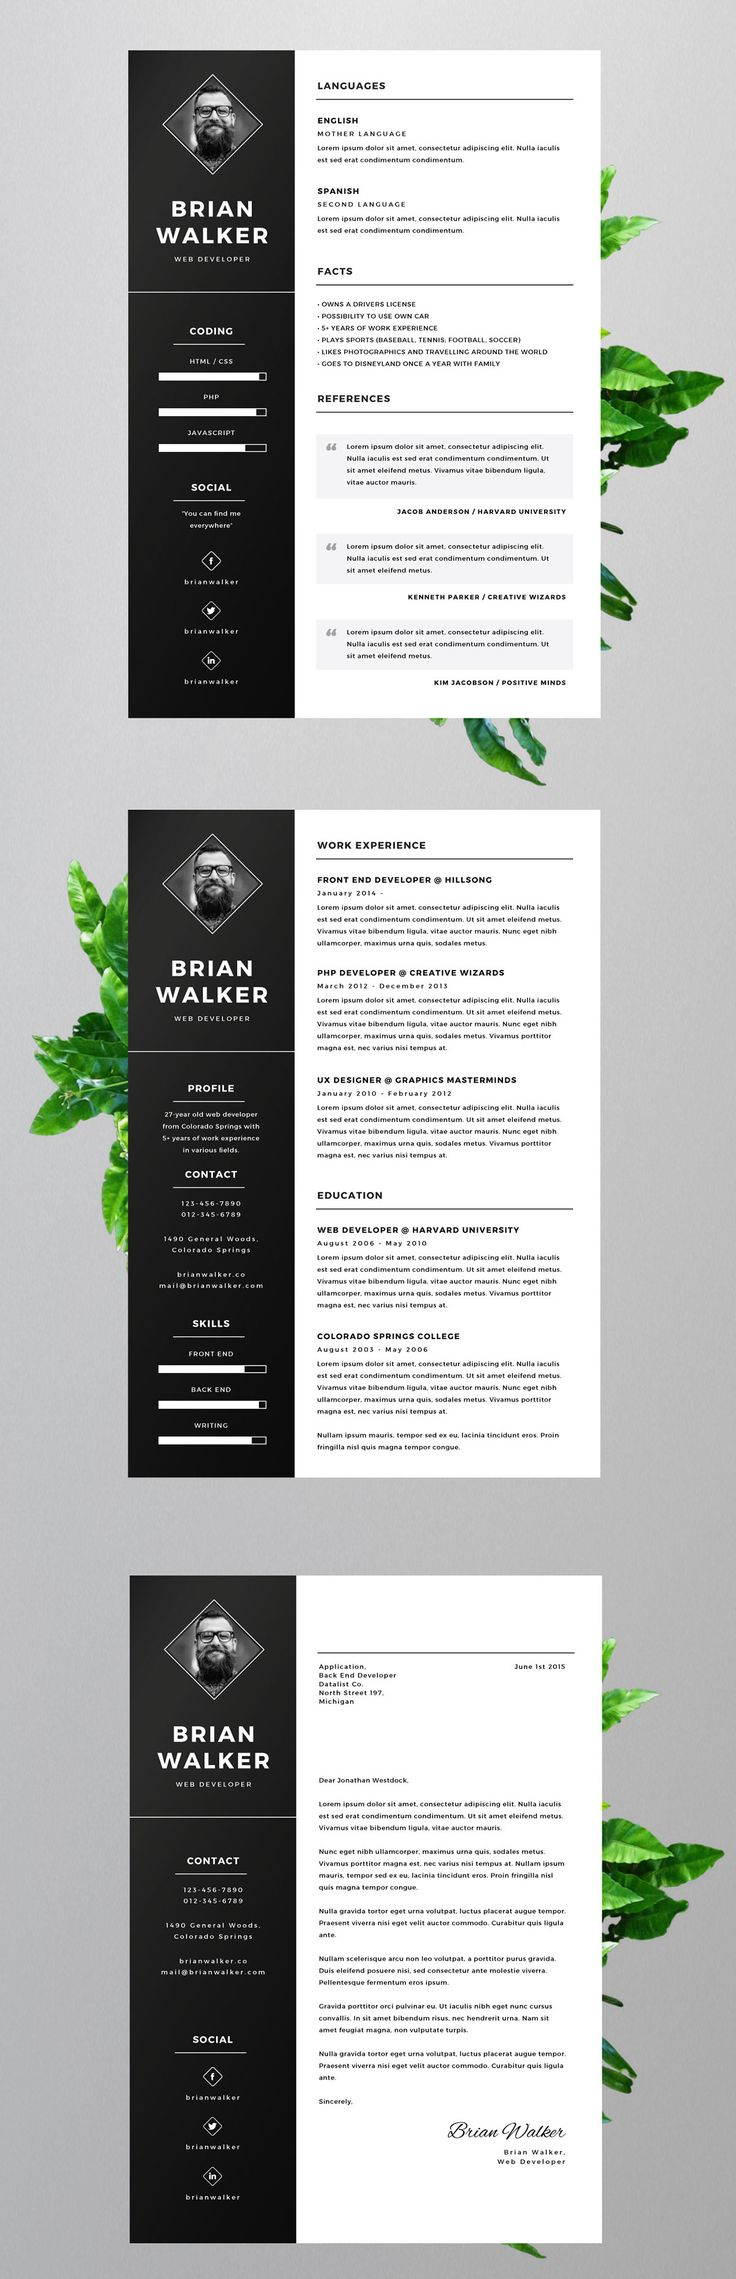 best ideas about resume templates word the best resume templates which are creative and to the resume templates available makes the writing process a piece of cake